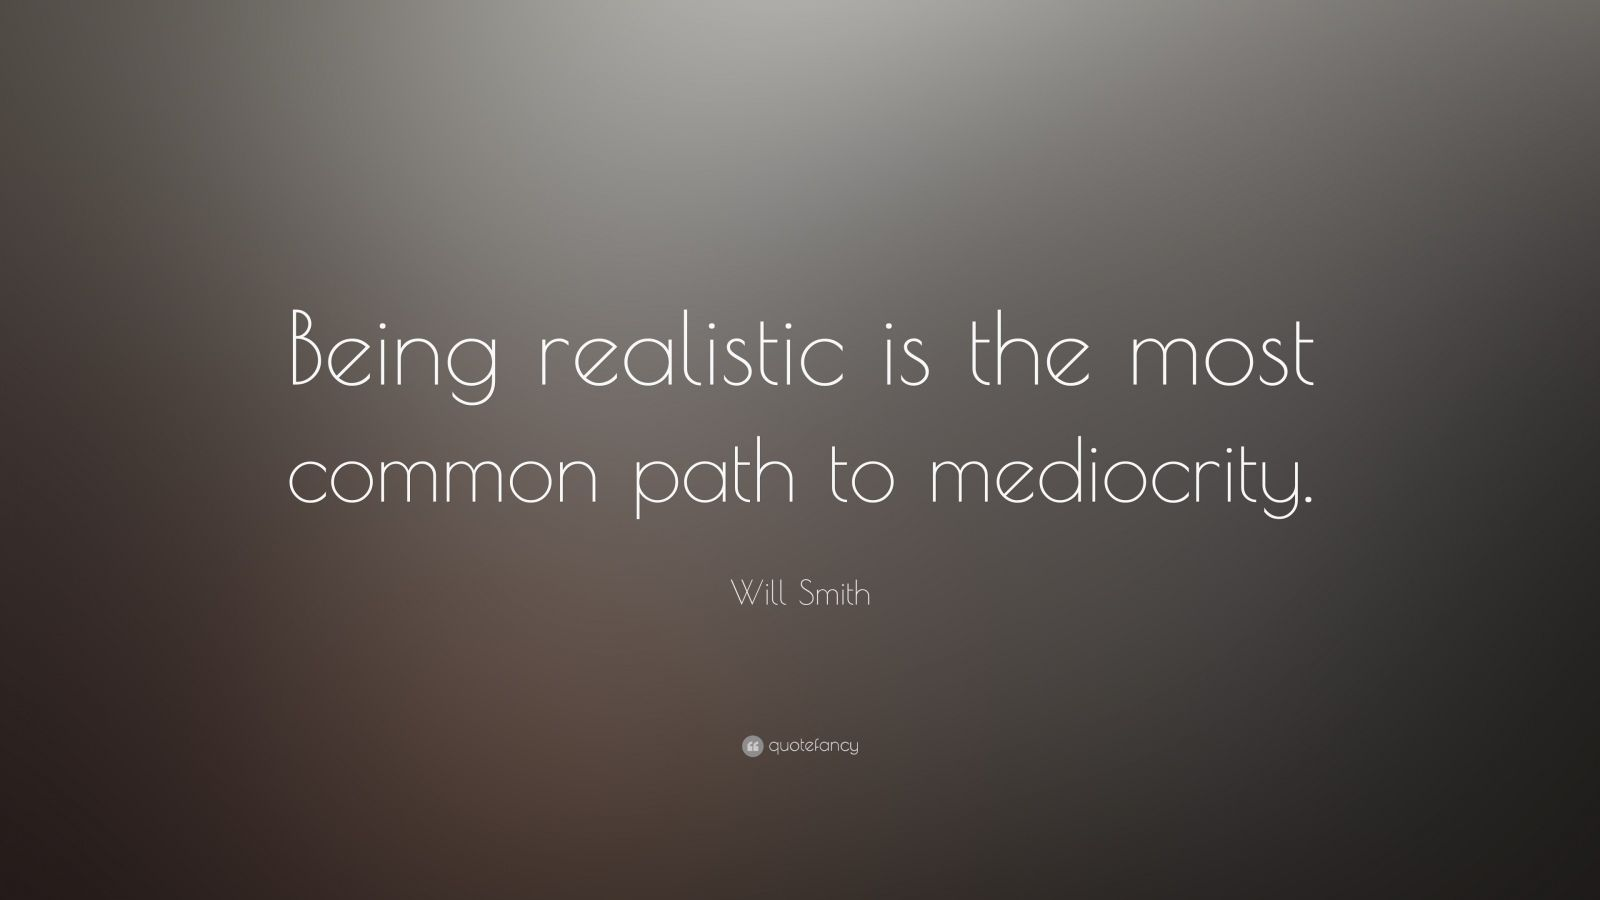 631 will smith quote being realistic is the most common path to jpg